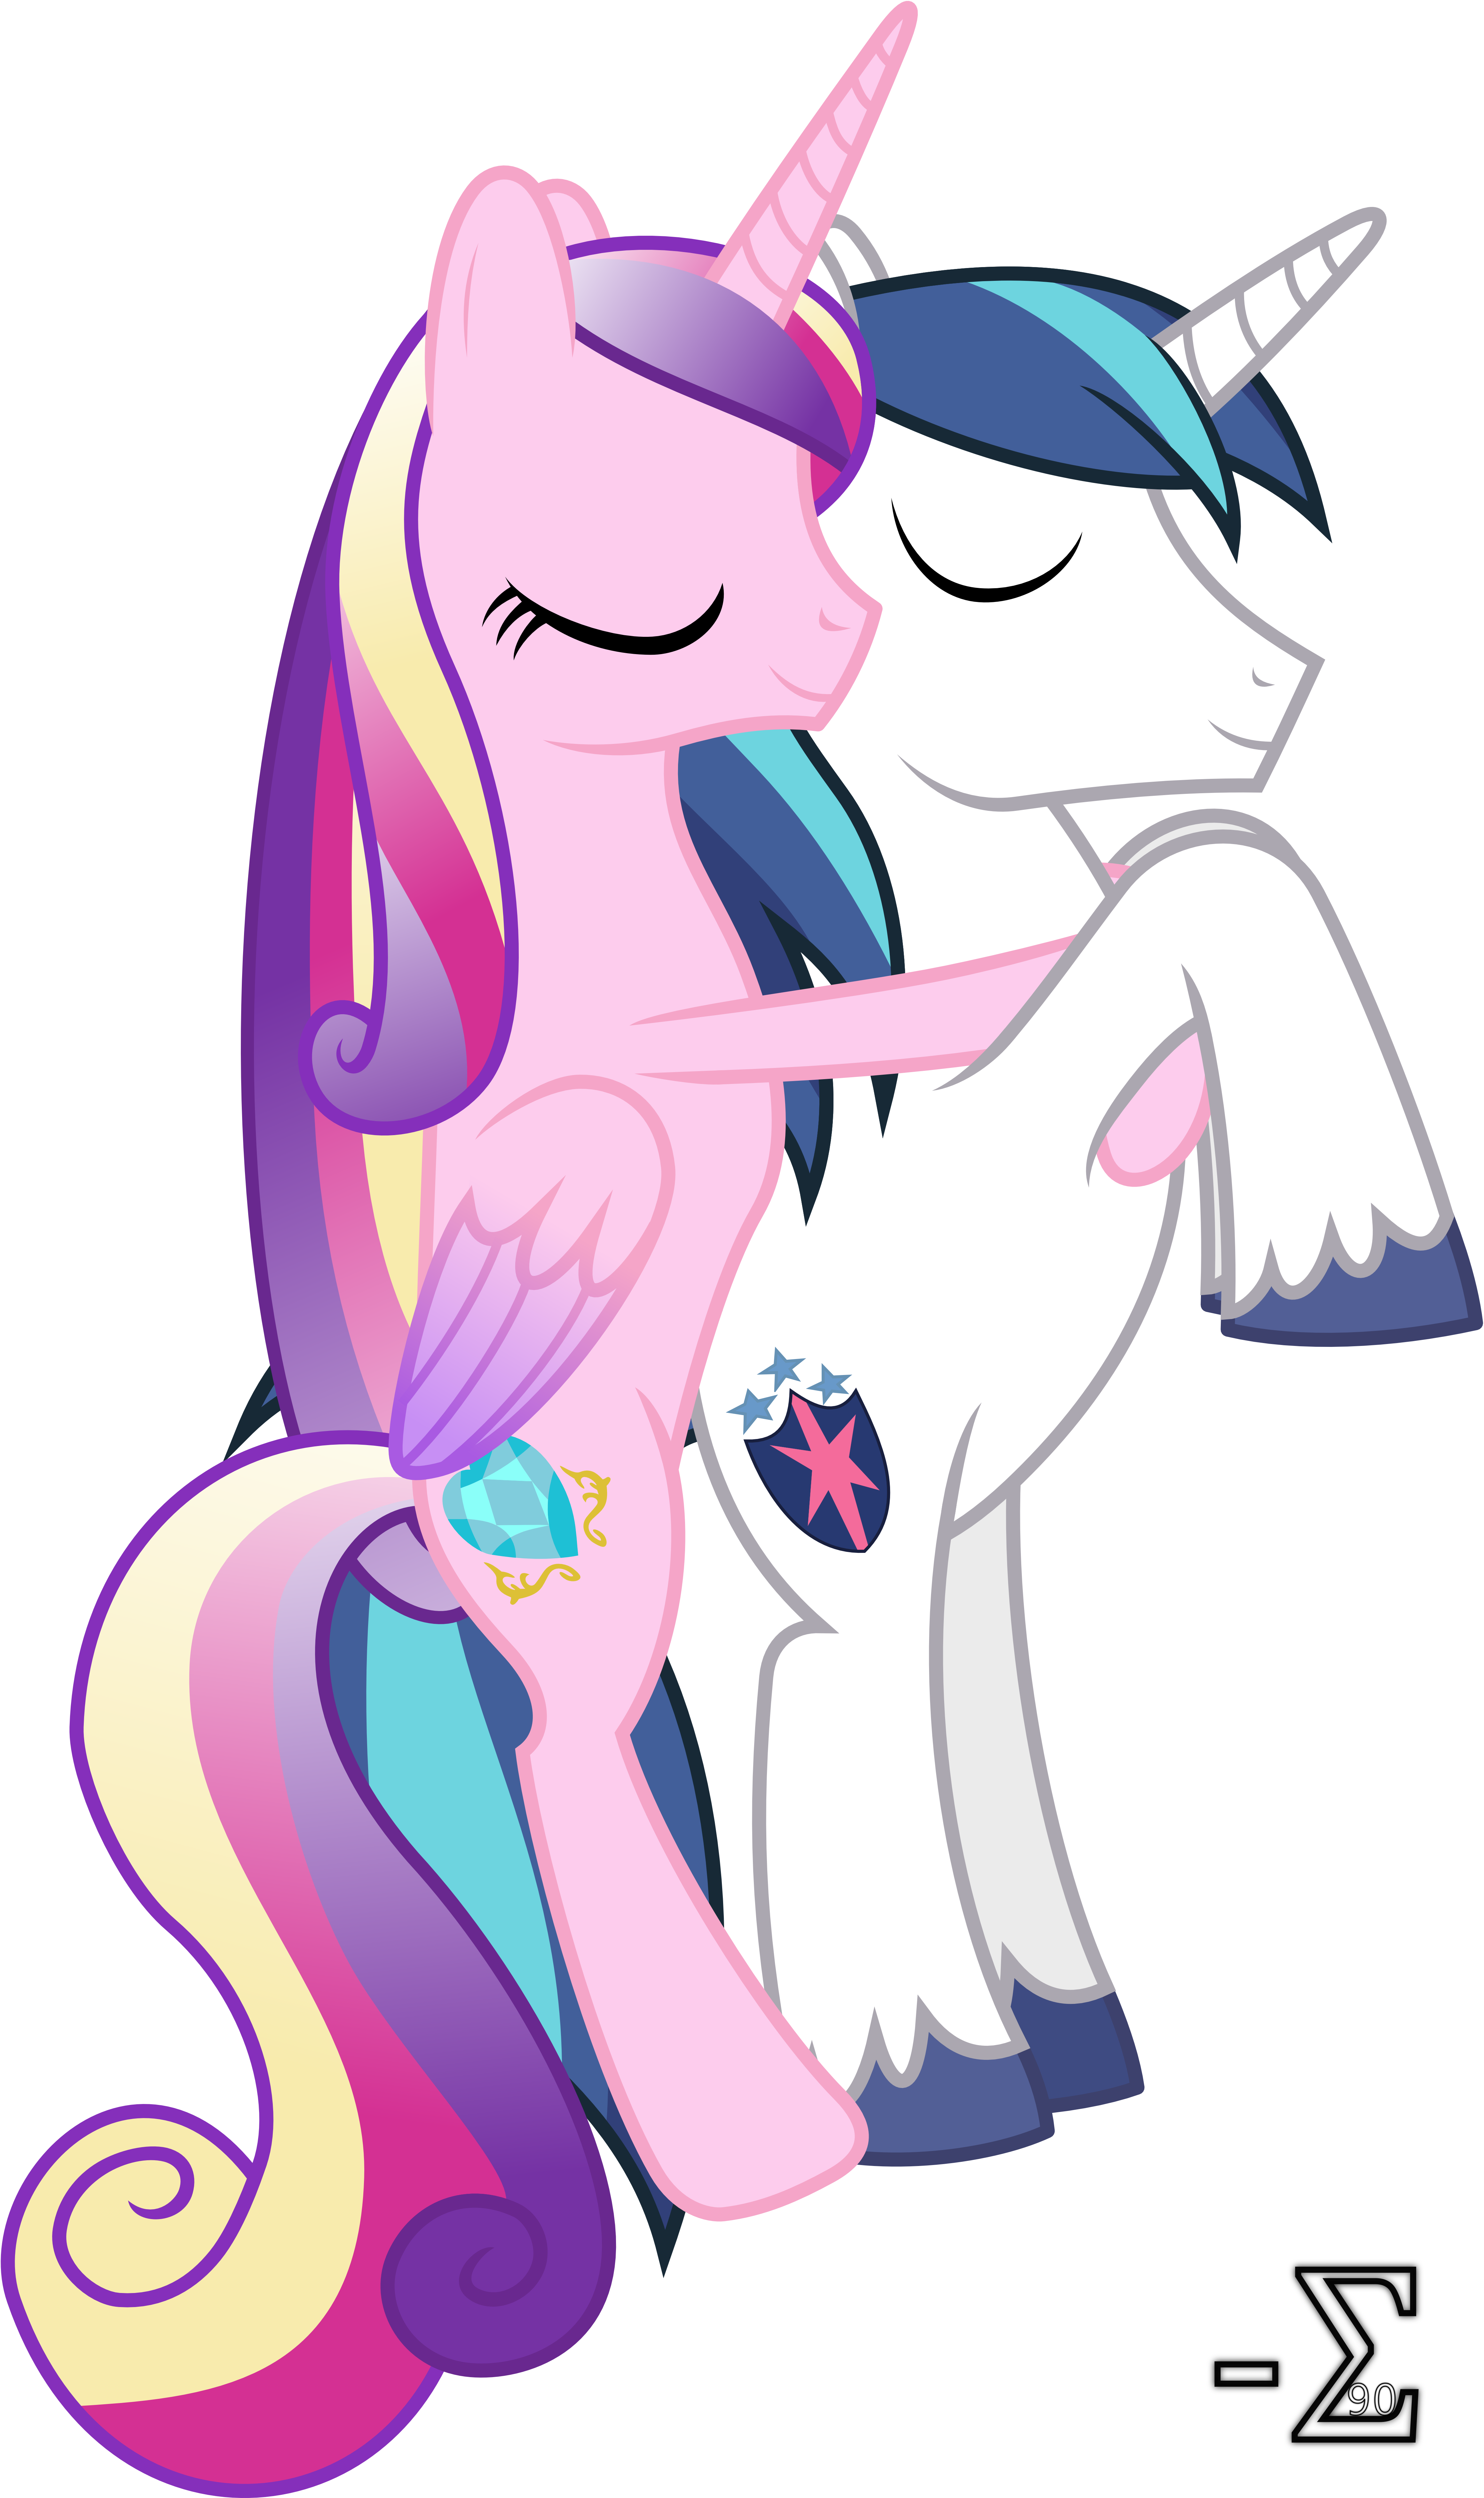 Princess Cadence R34 Images & Pictures - Becuo